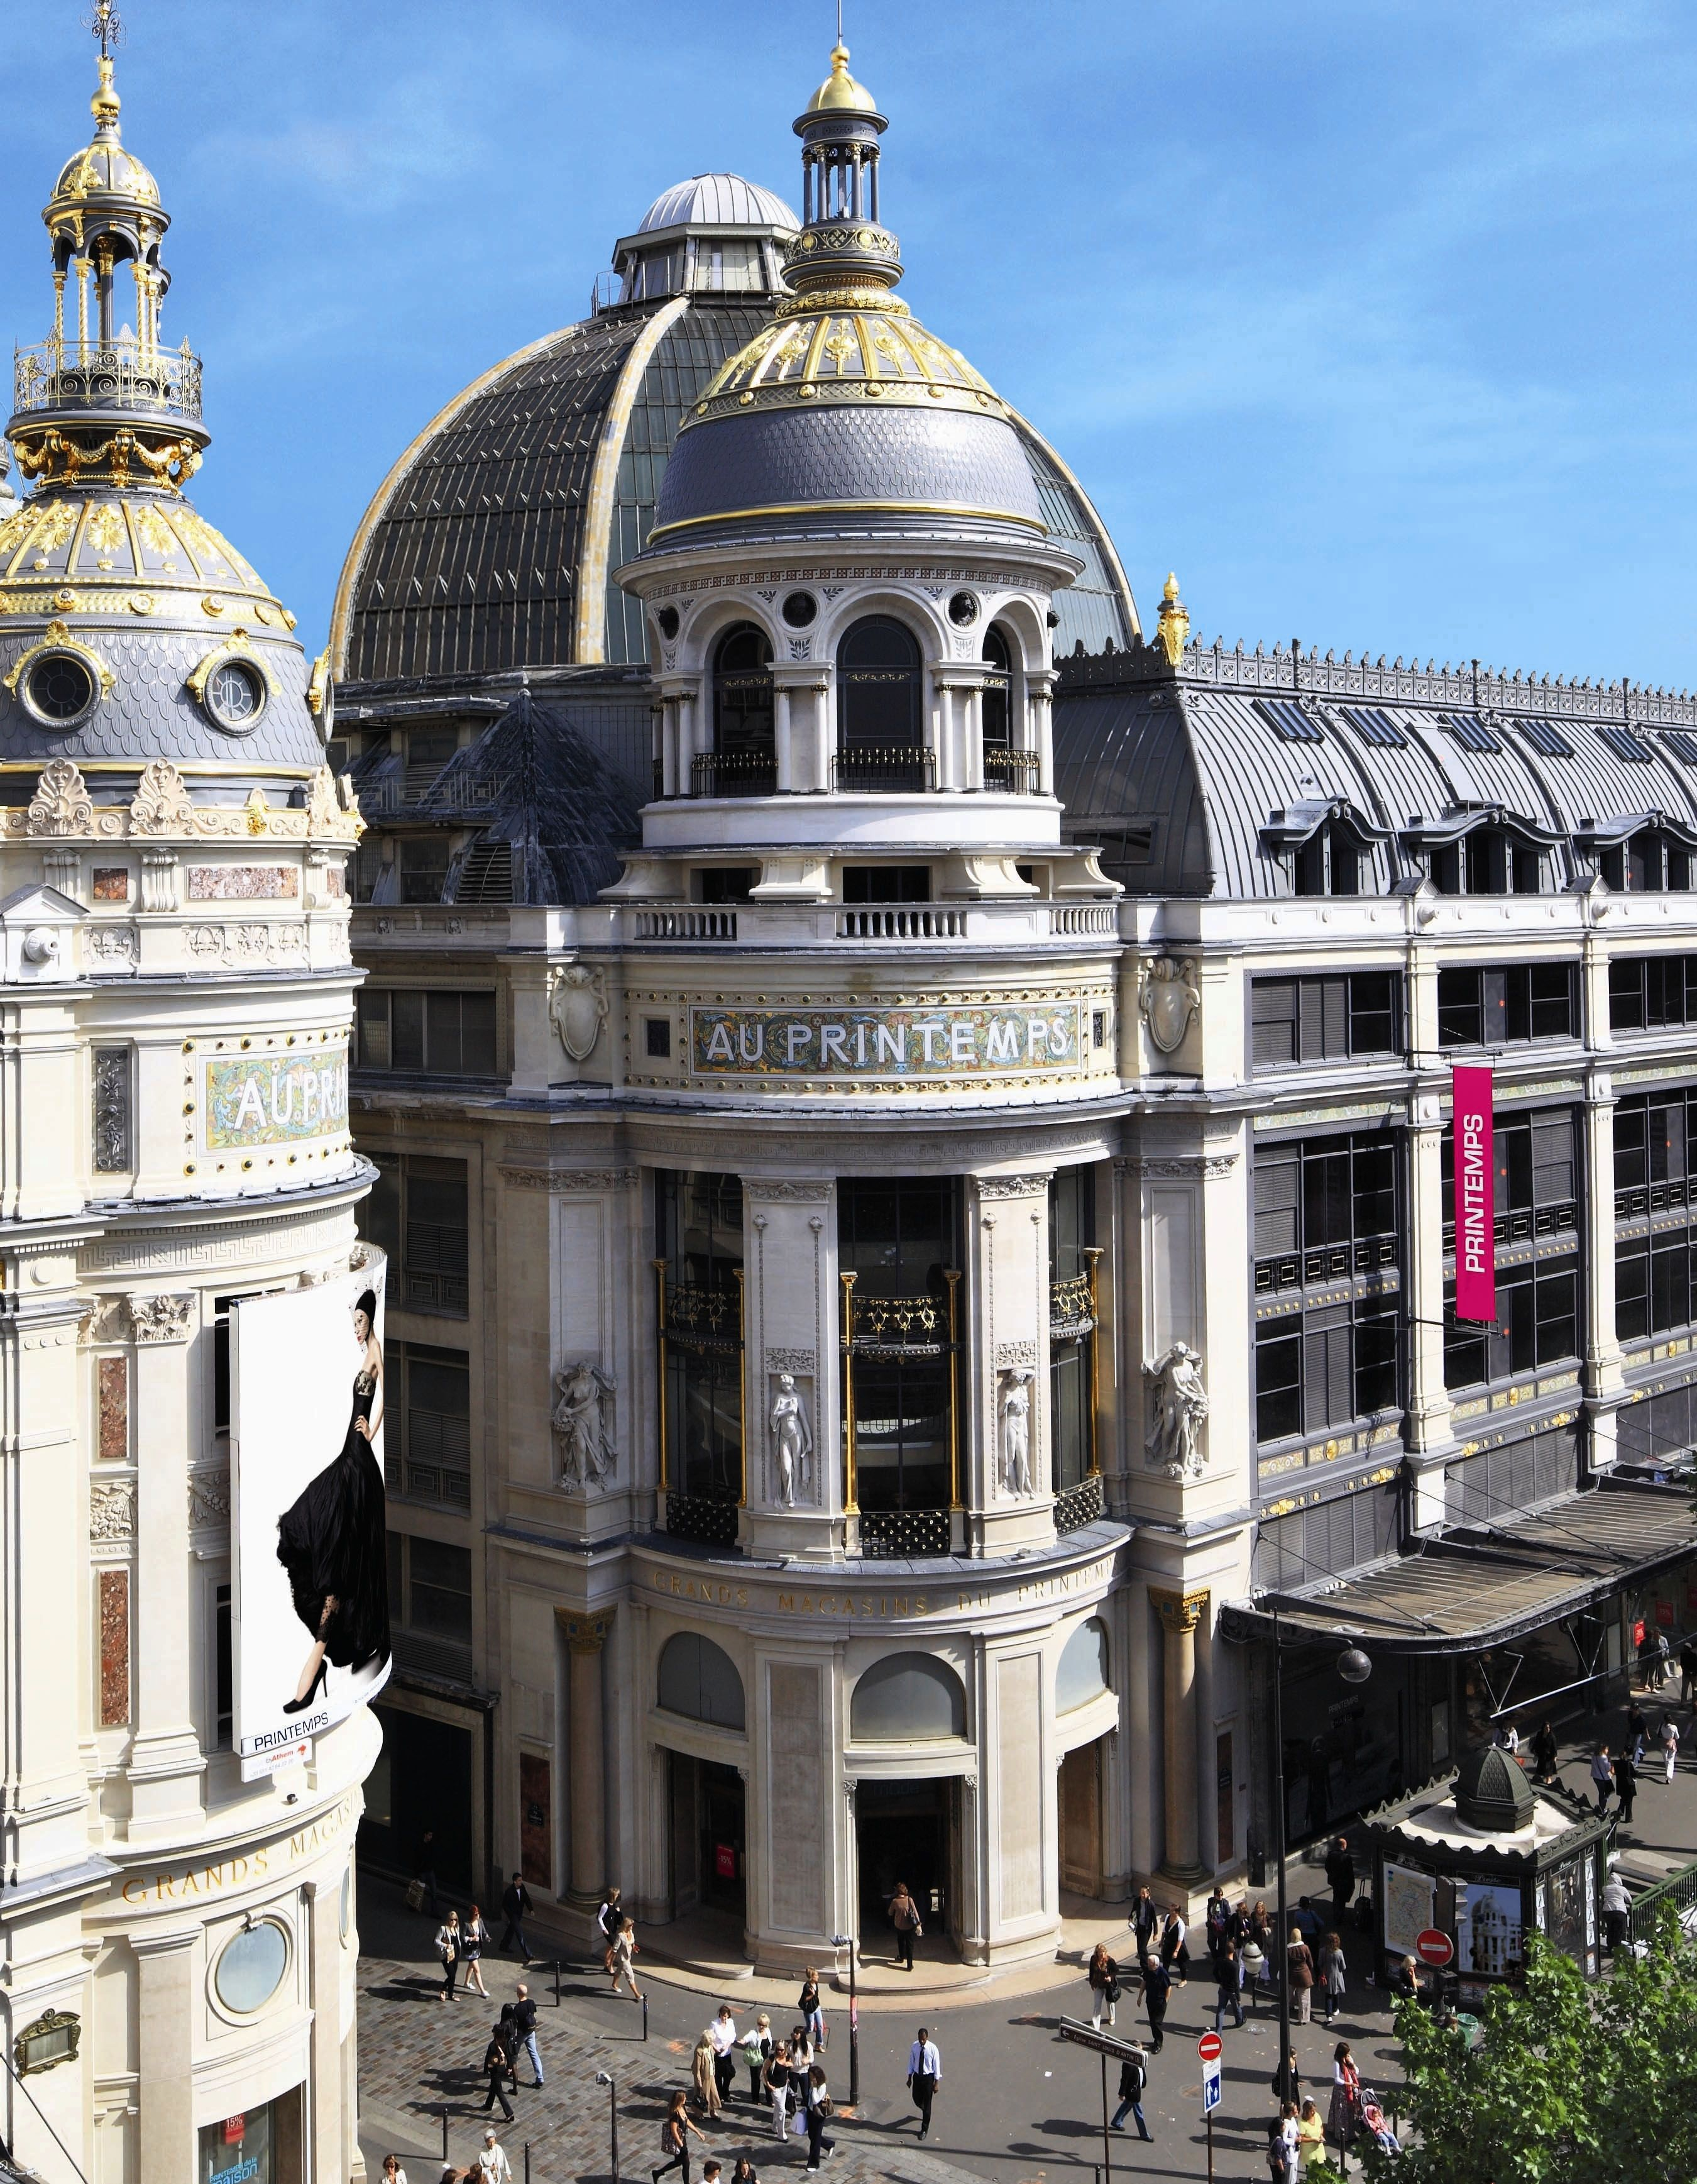 Le Printemps Paris The Au Printemps Departmental Store At Boulevard Haussmann Paris